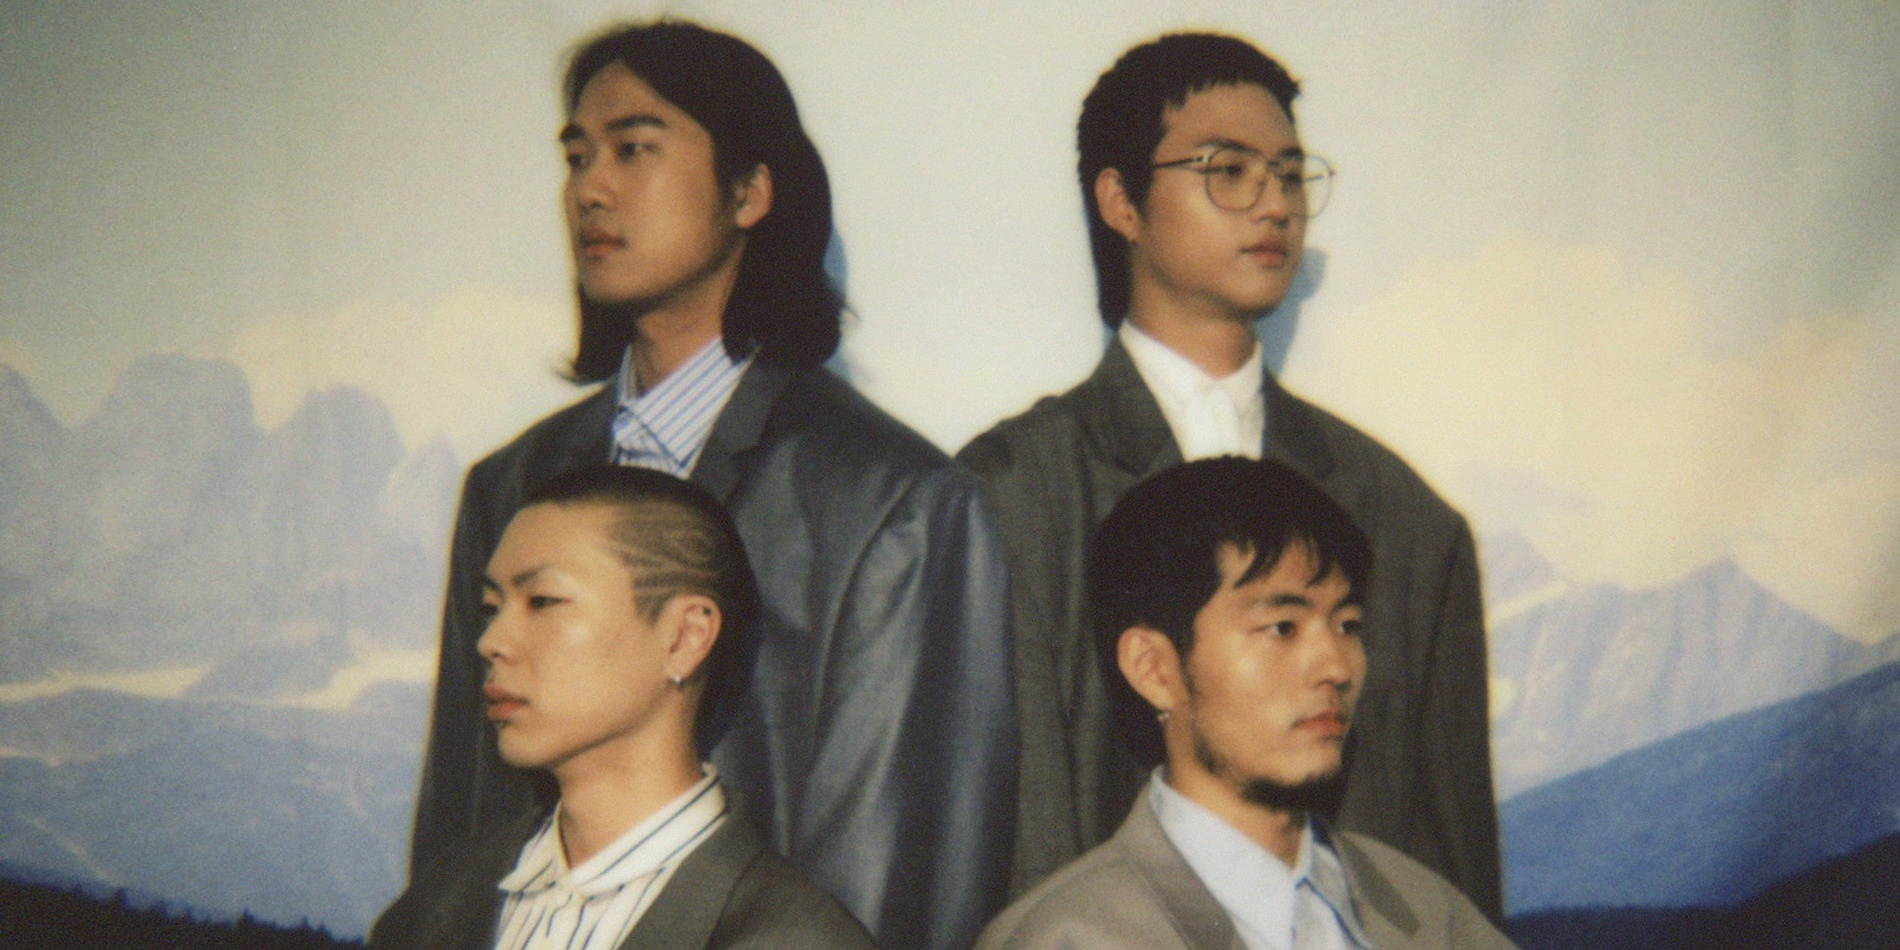 HYUKOH will perform in Singapore for the first time